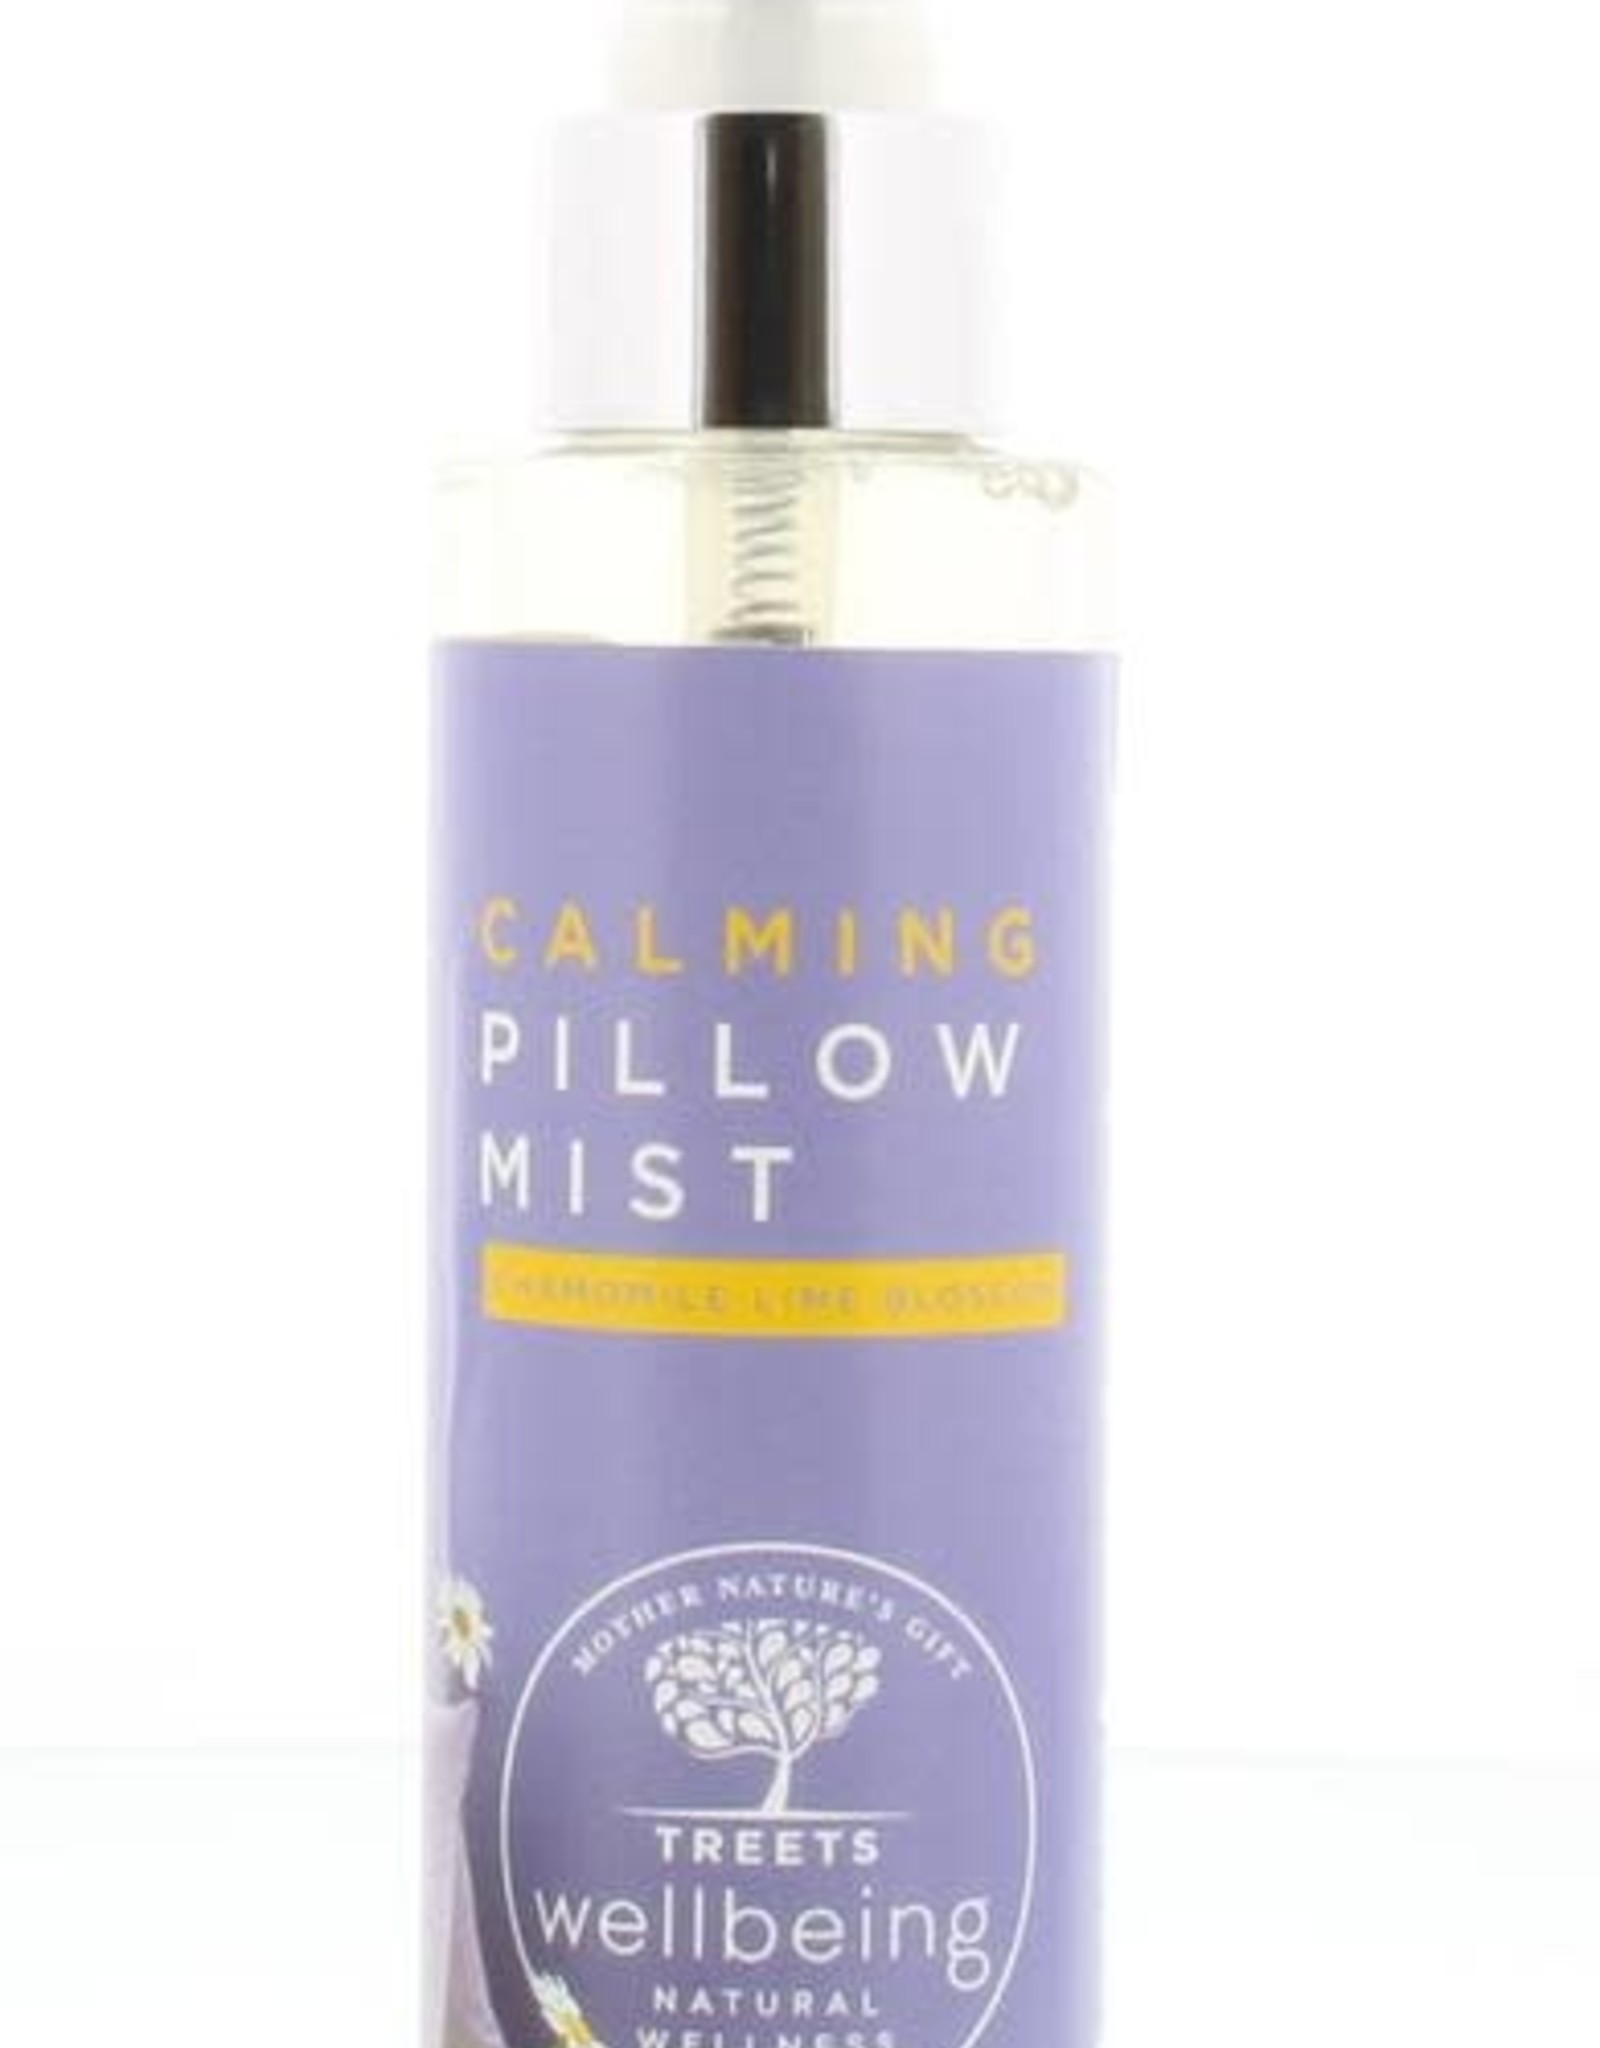 Treets Wellbeing calming pillow mist 130ml